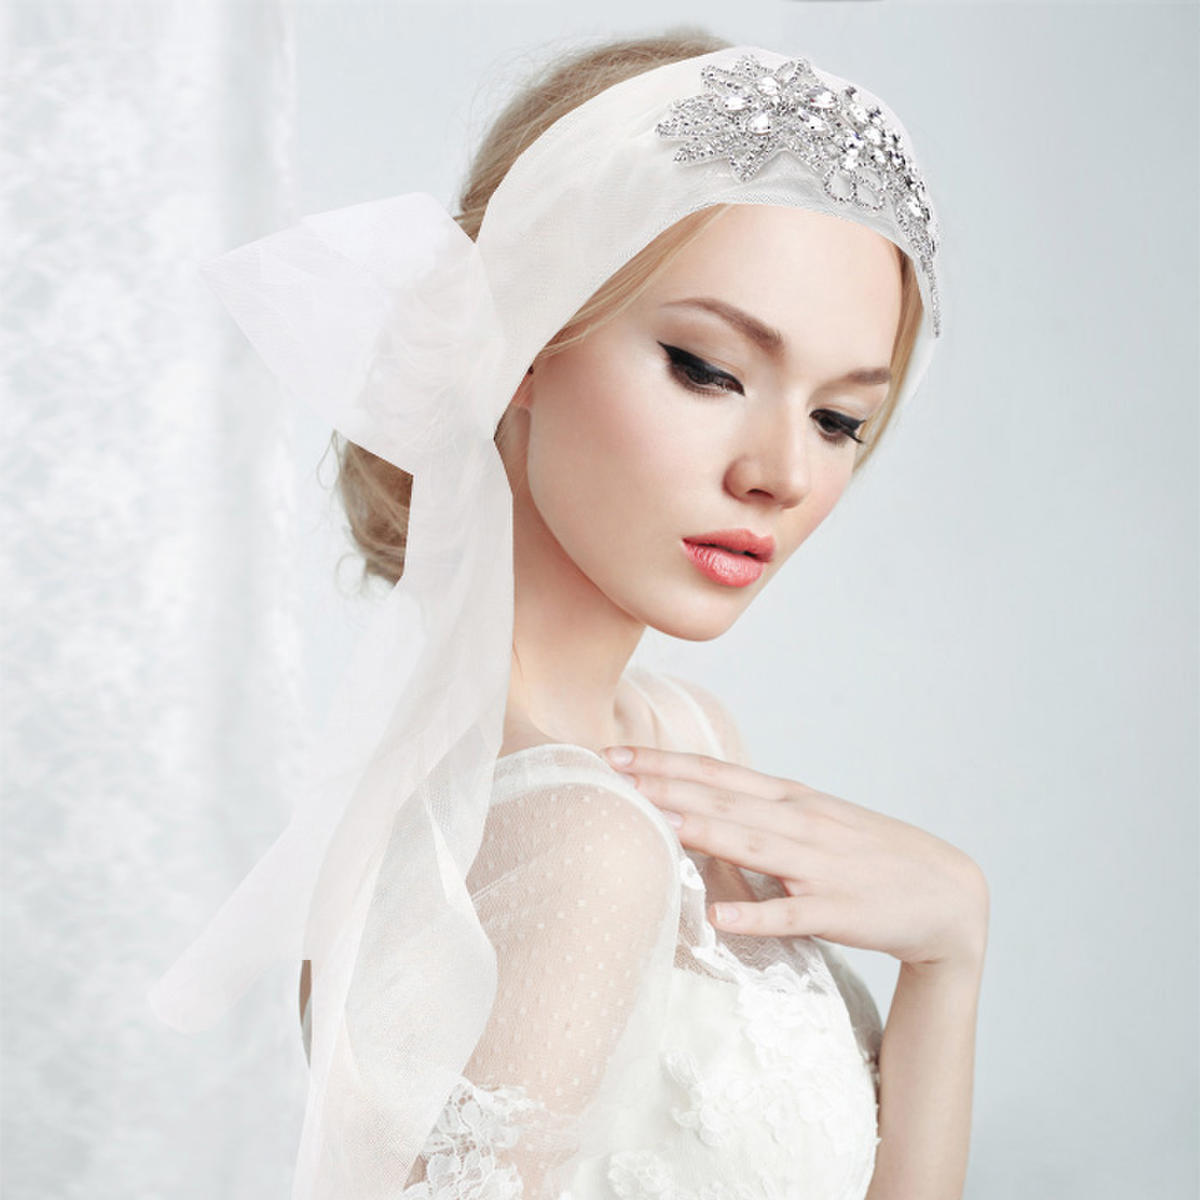 WONA TRADING INC - Crystal Embellished Bridal Wedding Headband